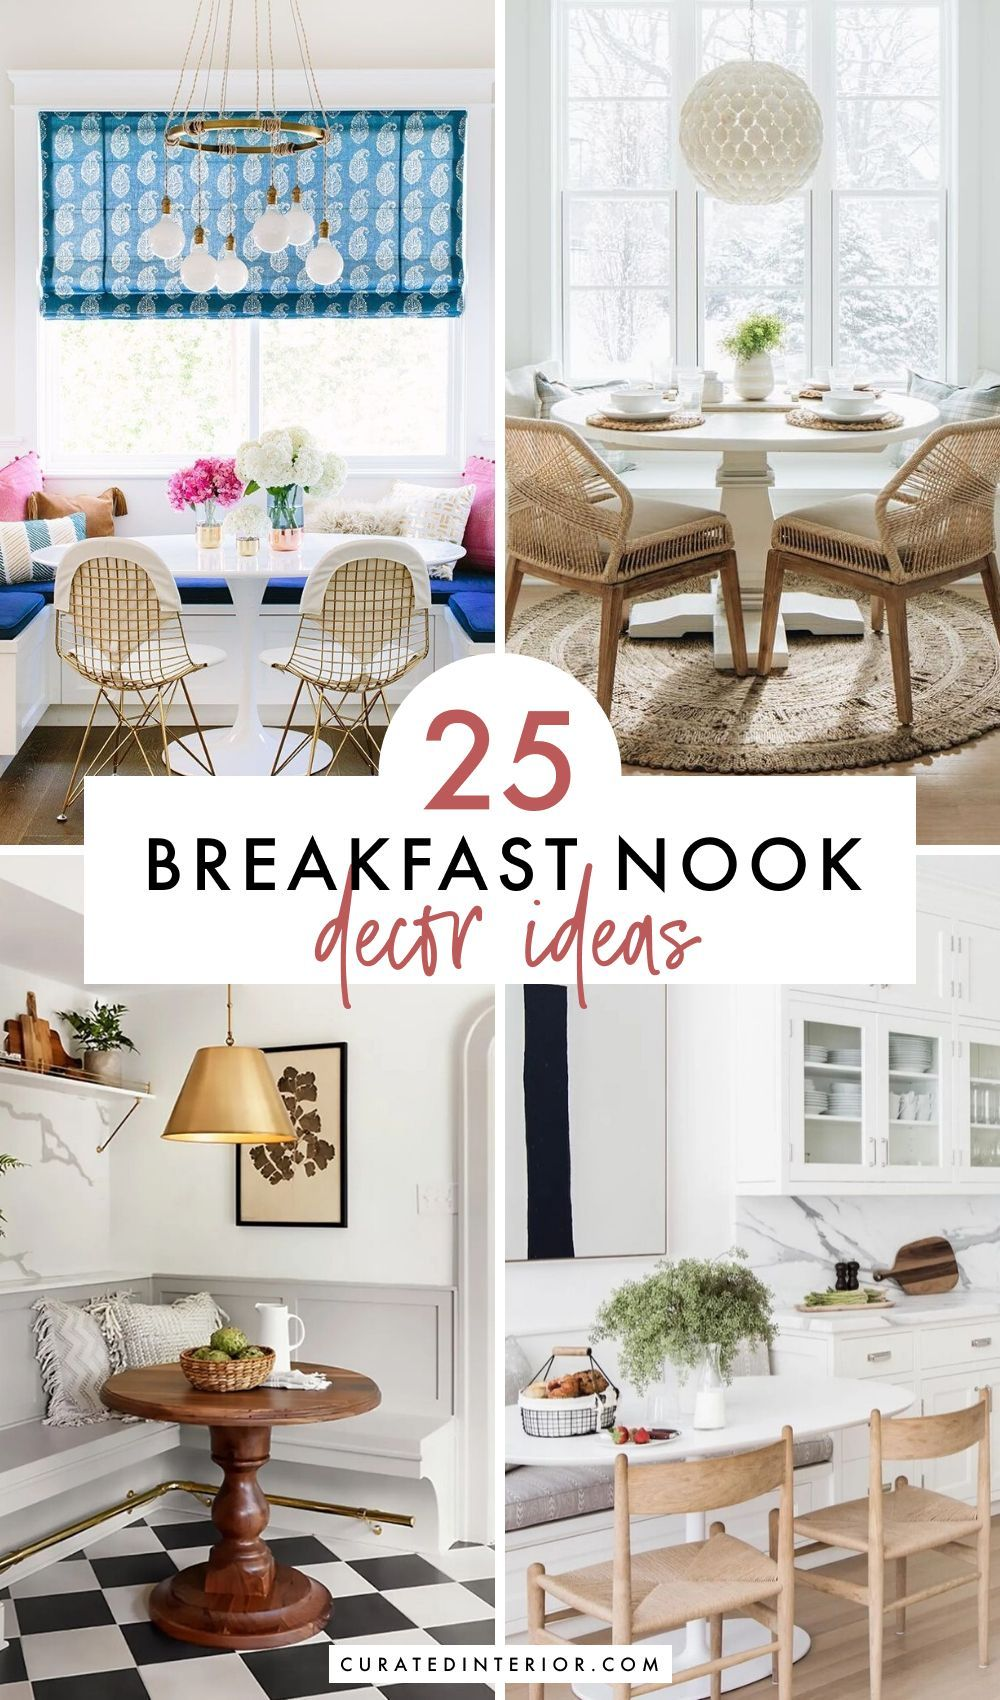 25 Breakfast Nook Decor Ideas In 2020 With Images Nook Decor